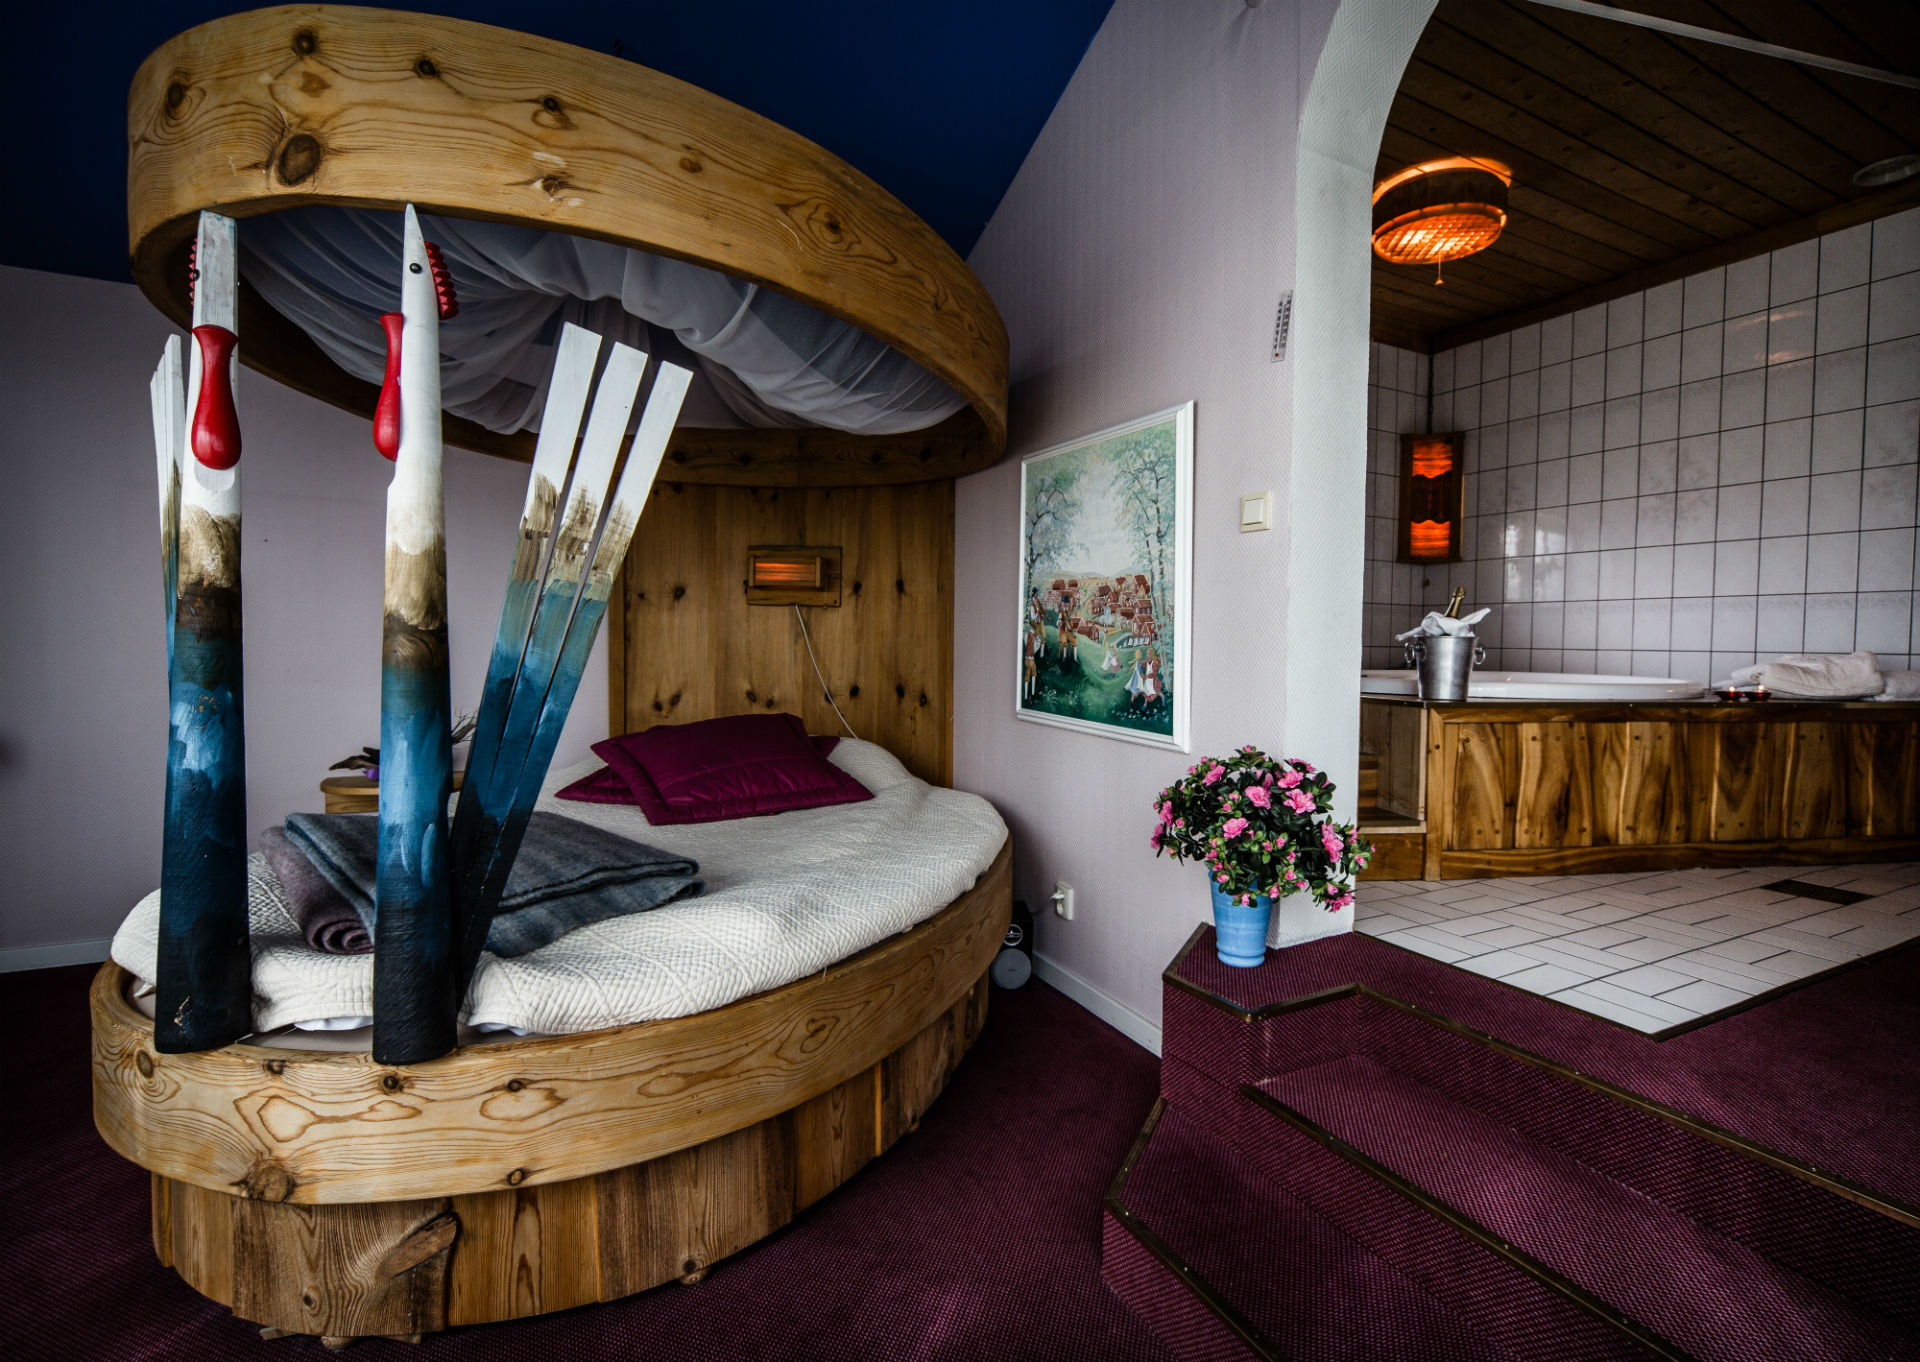 Persåsen wedding suite eggshaped bed